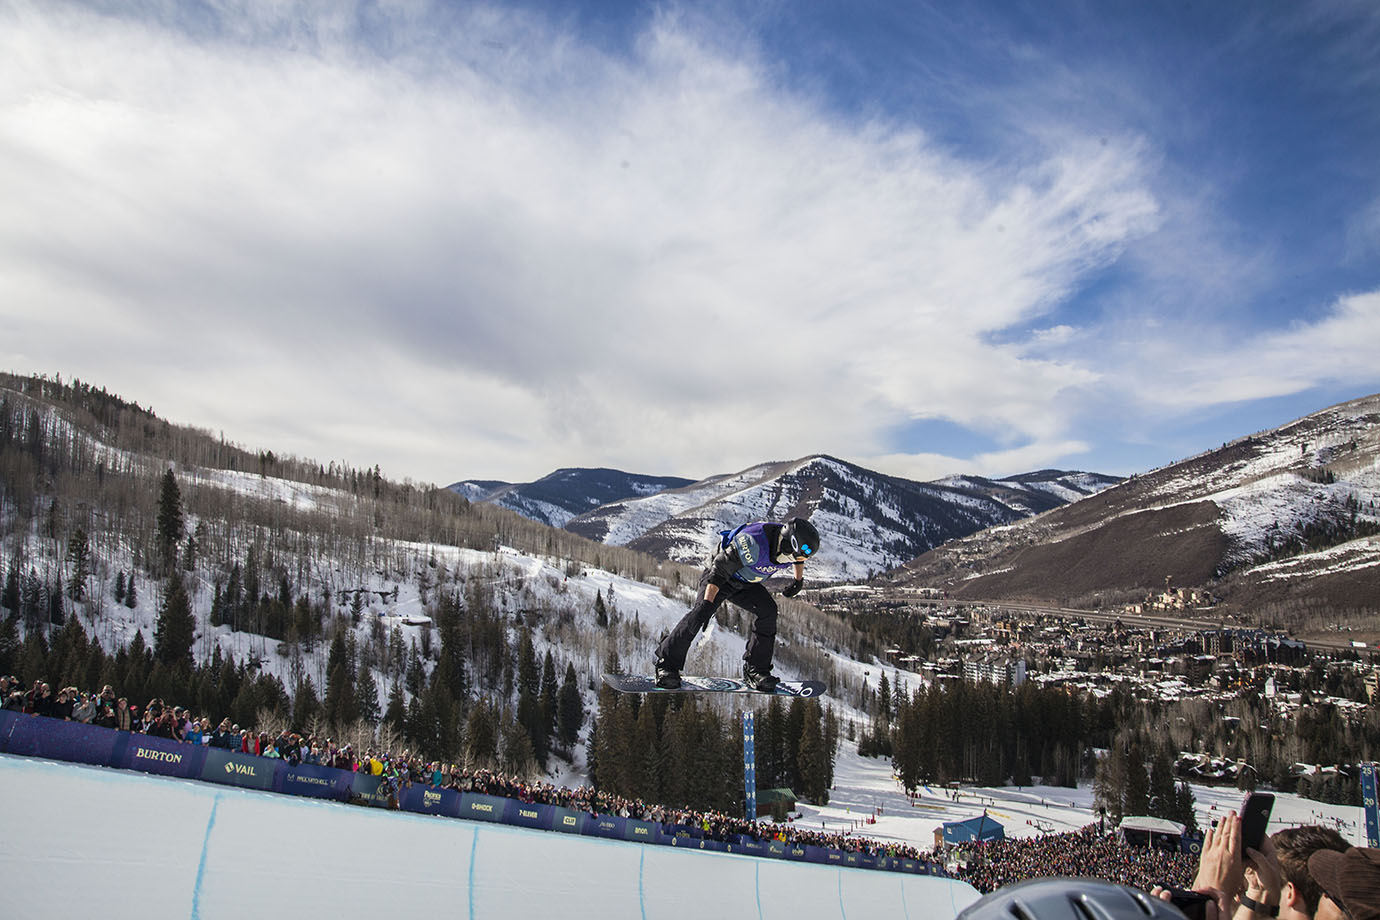 Shaun White puts the finishing touches on the 2016 Burton U.S. Open. His final run, a victory lap like Jamie Anderson's and Chloe Kim's, is the final competitive act of the weekend.